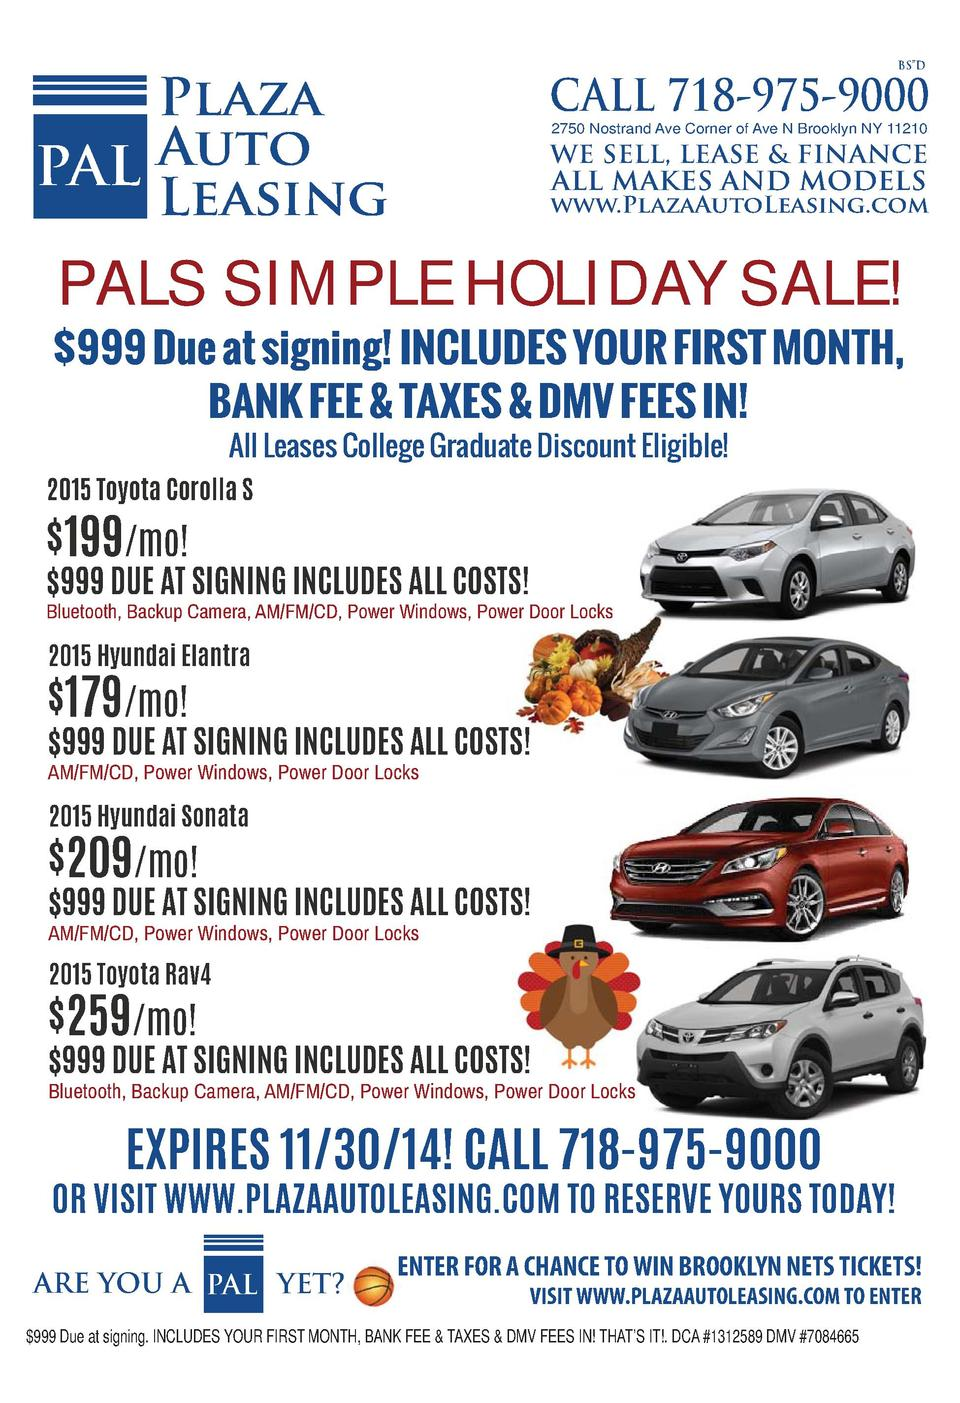 BS   D  Plaza PAL Auto Leasing  CALL 718-975-9000 2750 Nostrand Ave Corner of Ave N Brooklyn NY 11210  WE SELL, LEASE   FI...